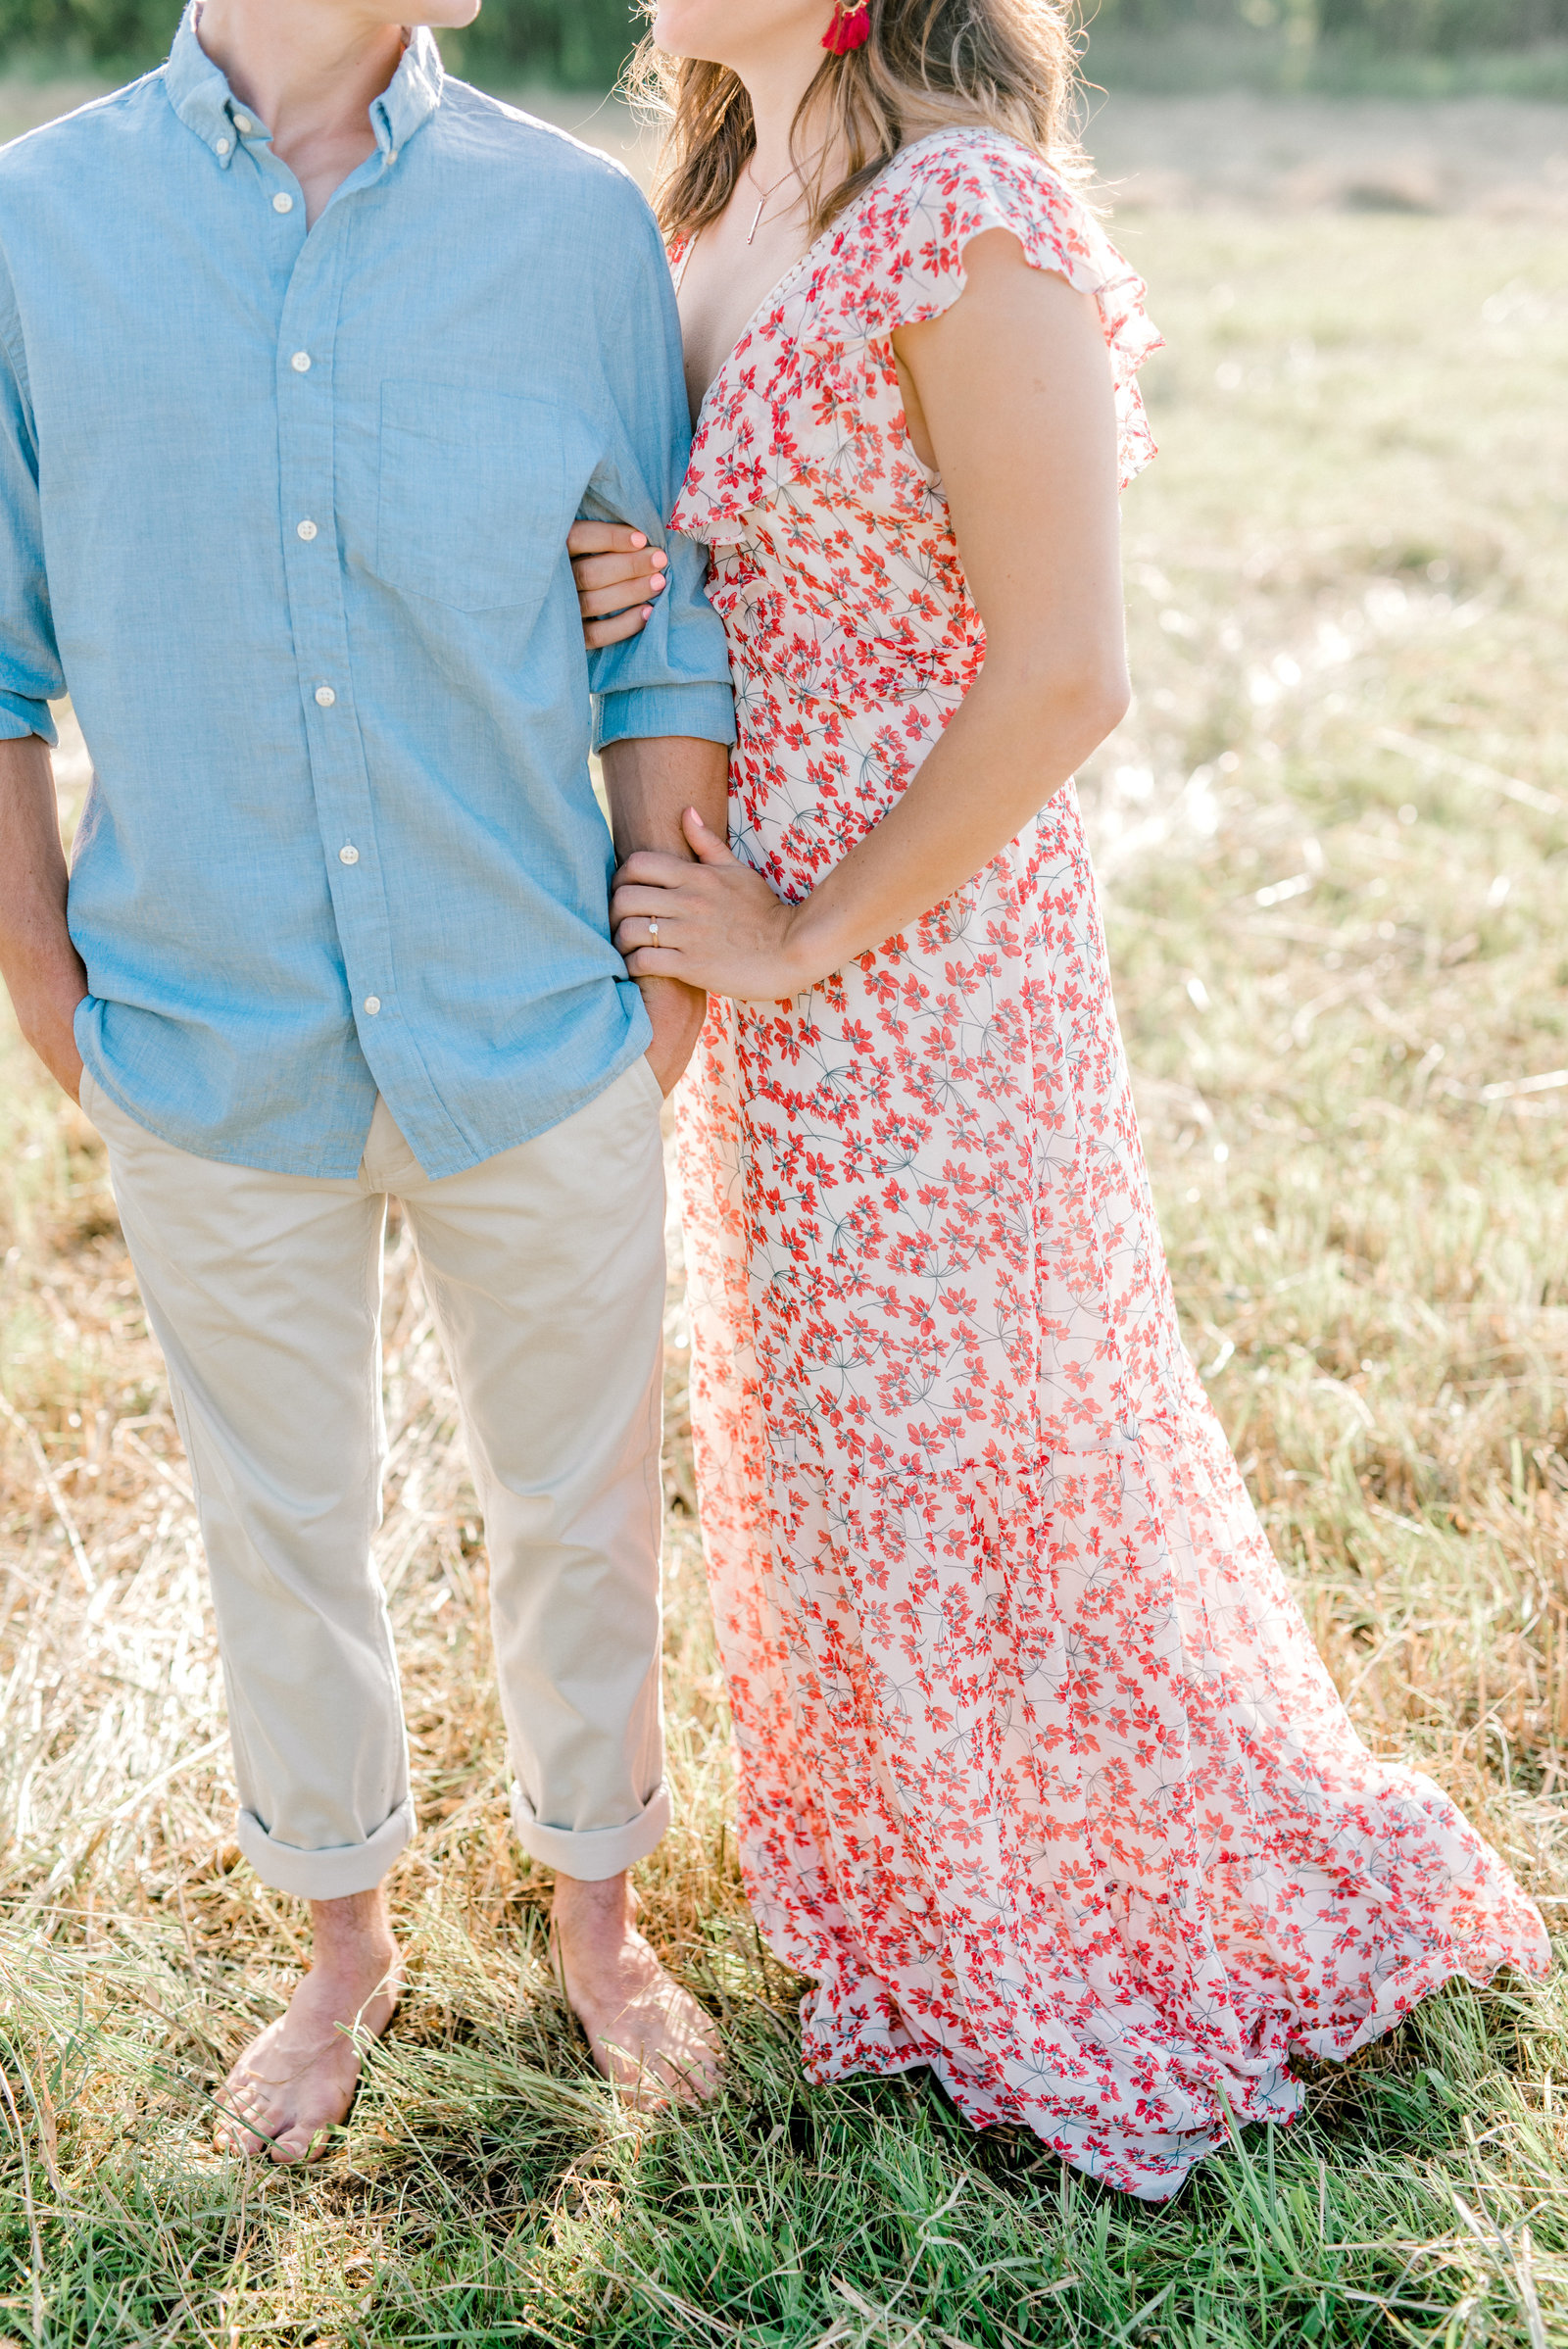 Couple in a field with dreamy light in PA